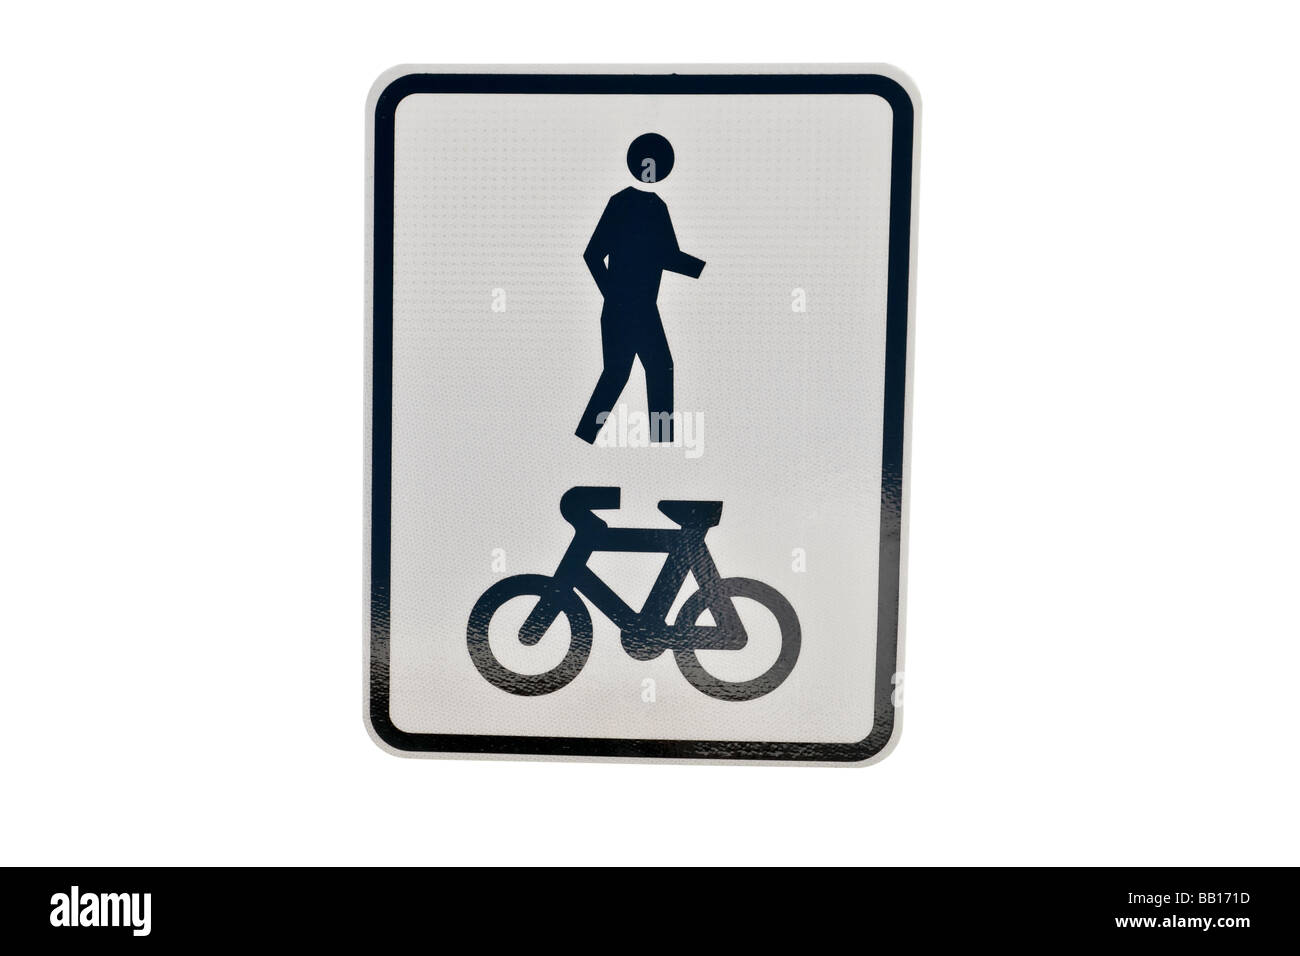 Street or road sign detailing a shared area for pedestrians and bikes - Stock Image